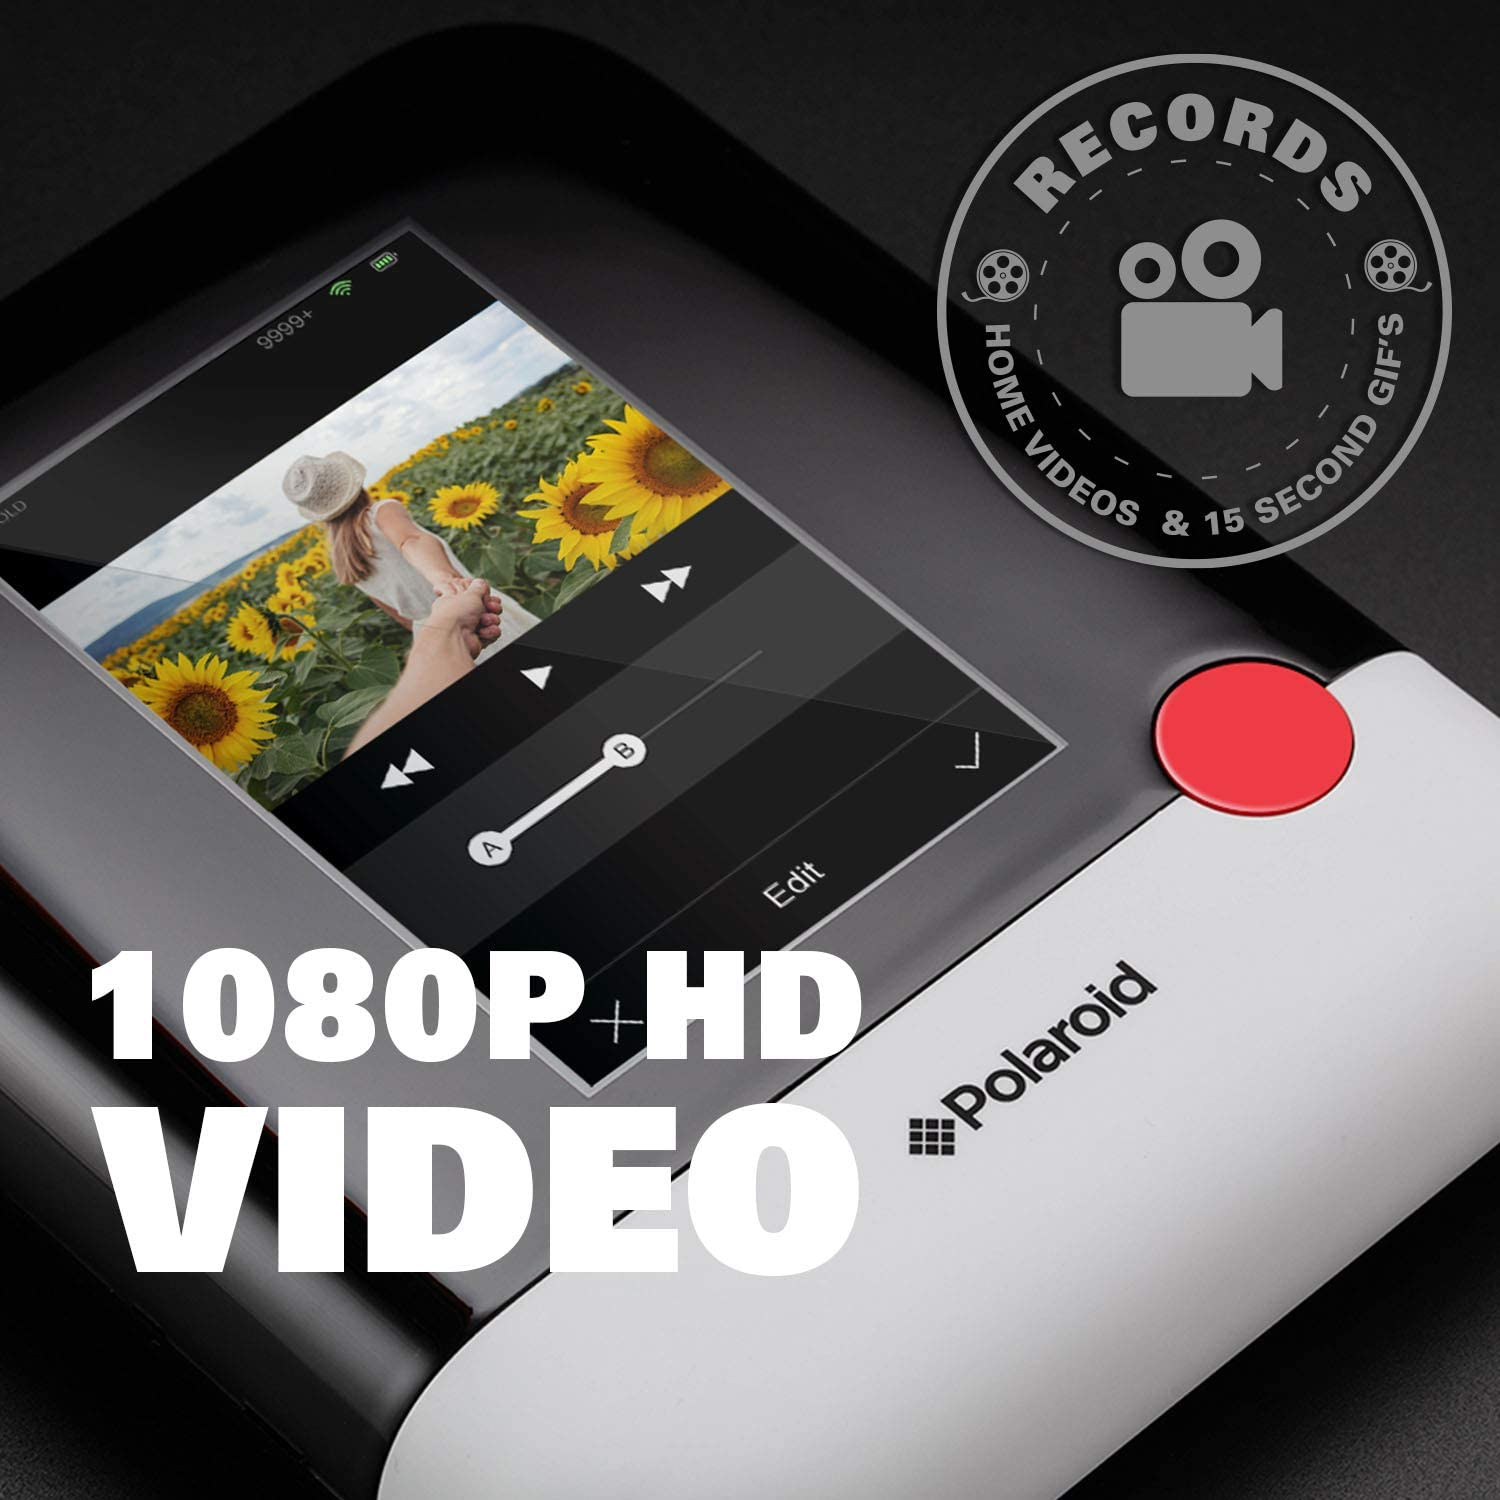 Zink Polaroid Pop 2.0 Portable Photo and Video Printer